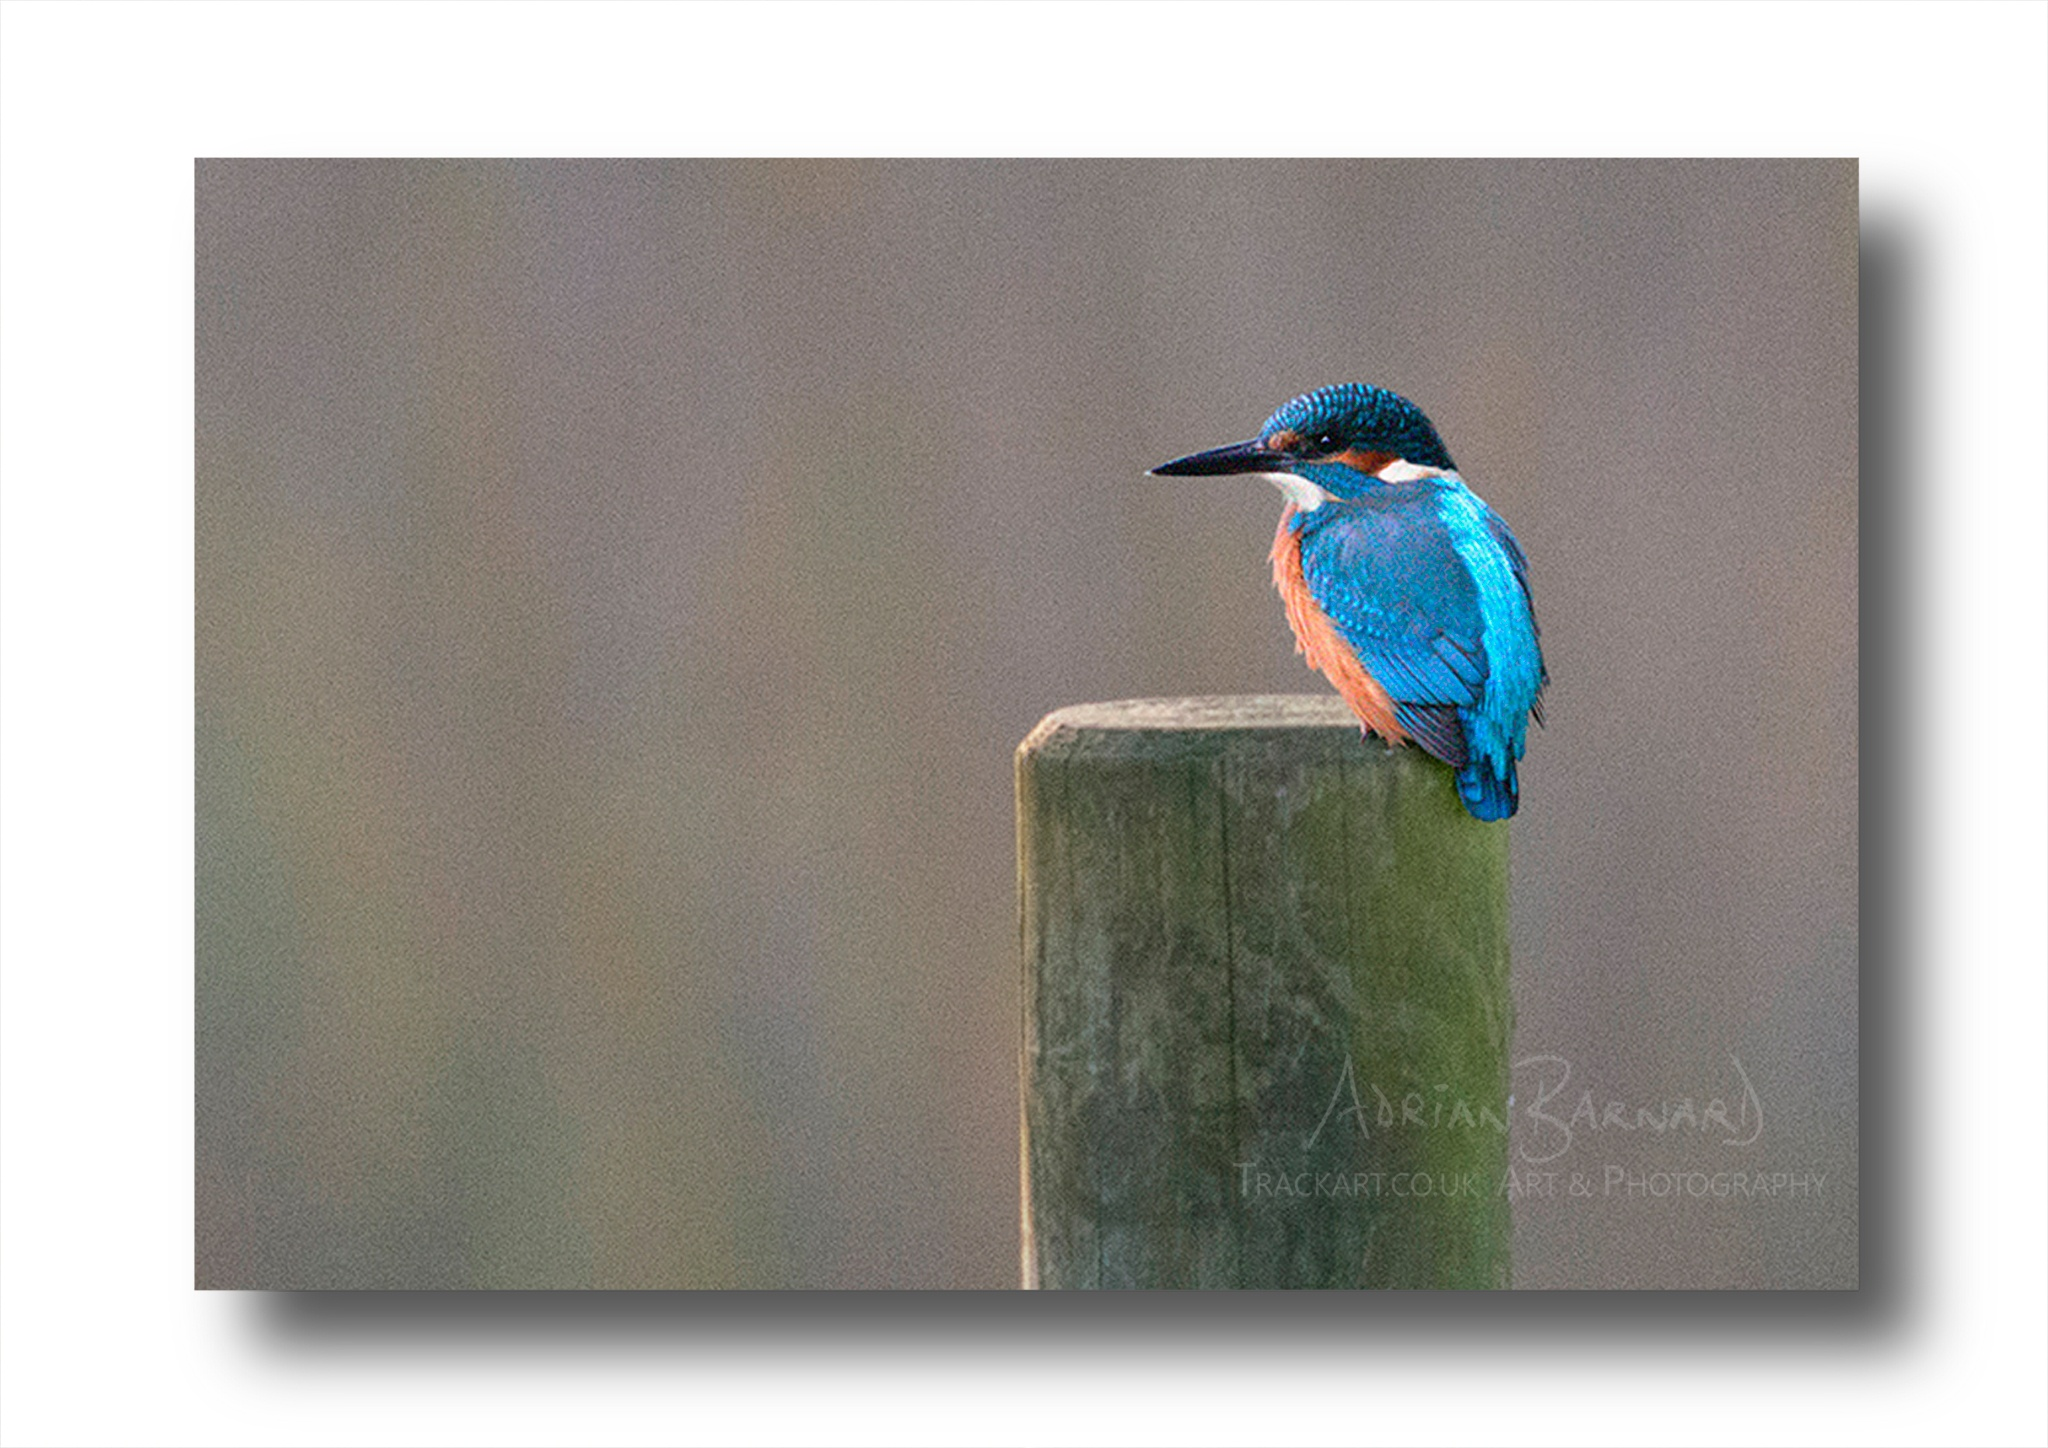 Kingfisher by Adrian Barnard